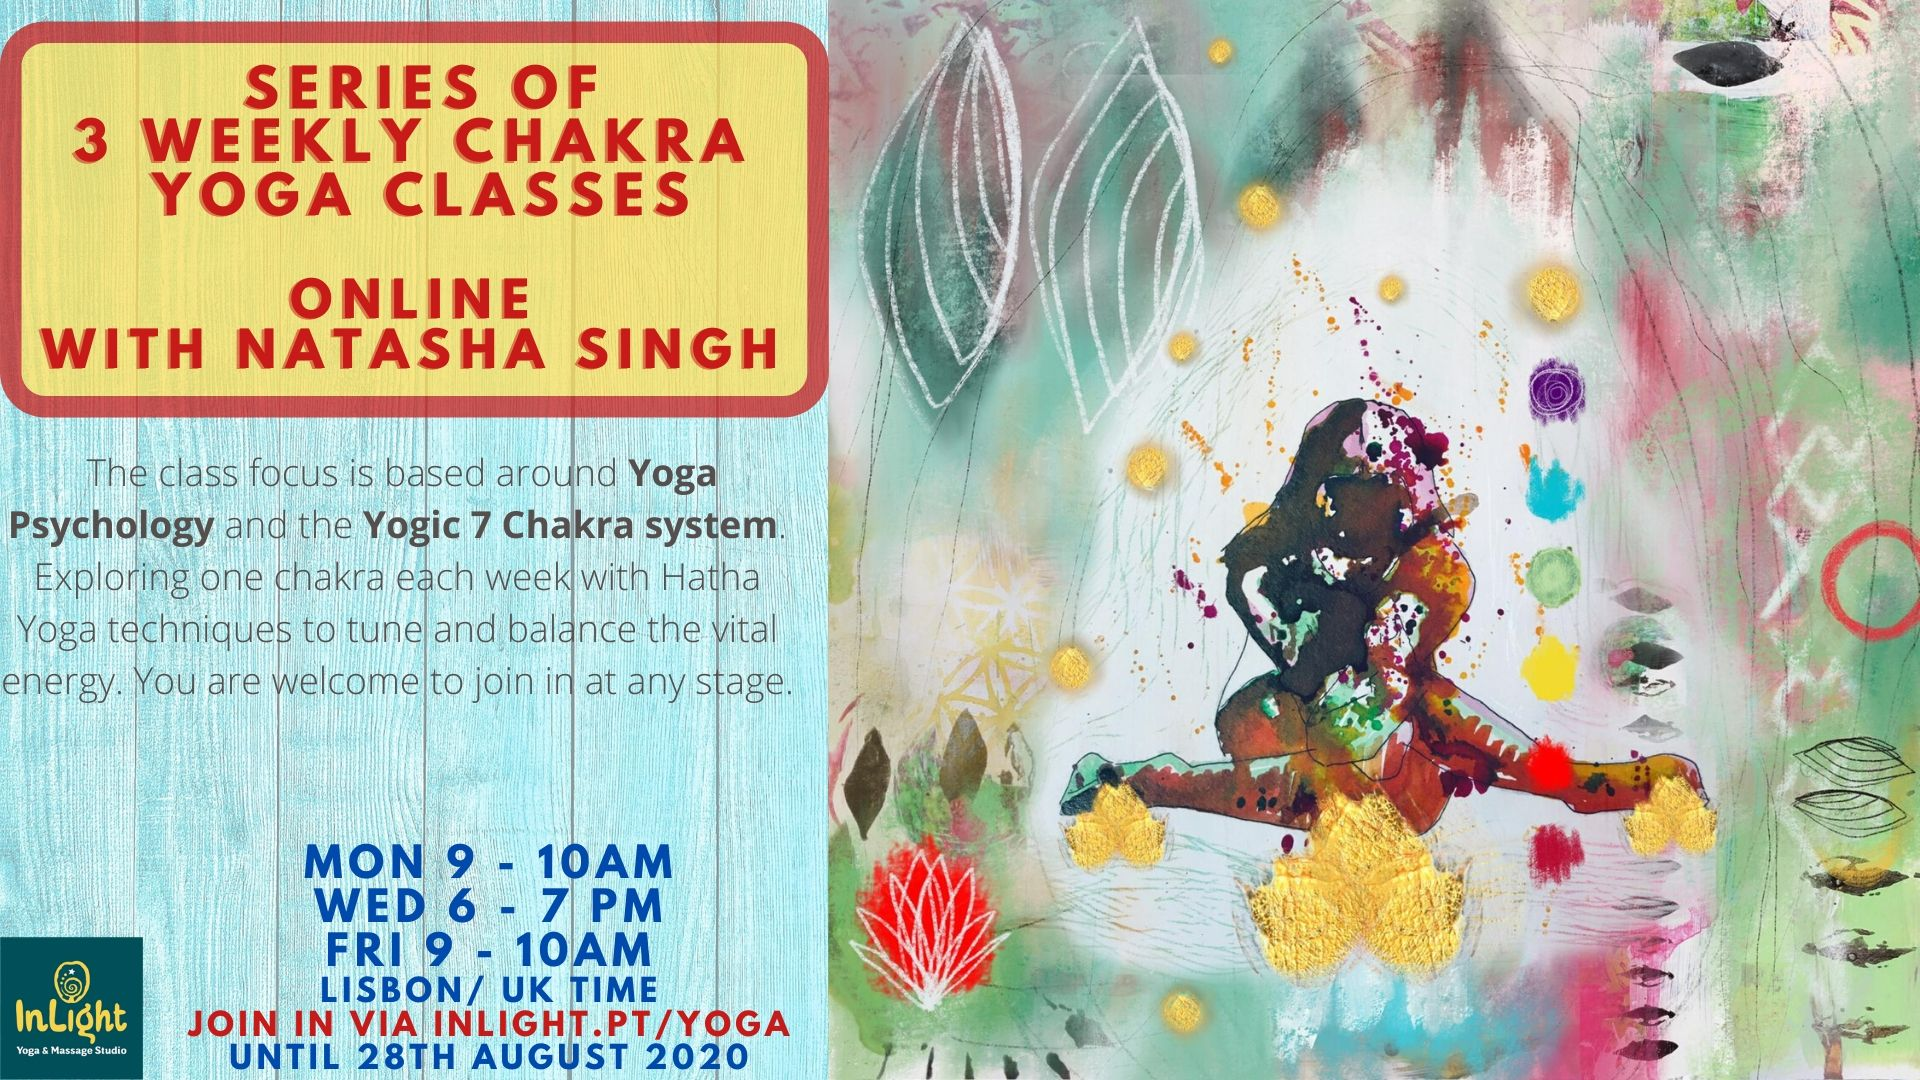 Chakra classes with Natasha Singh